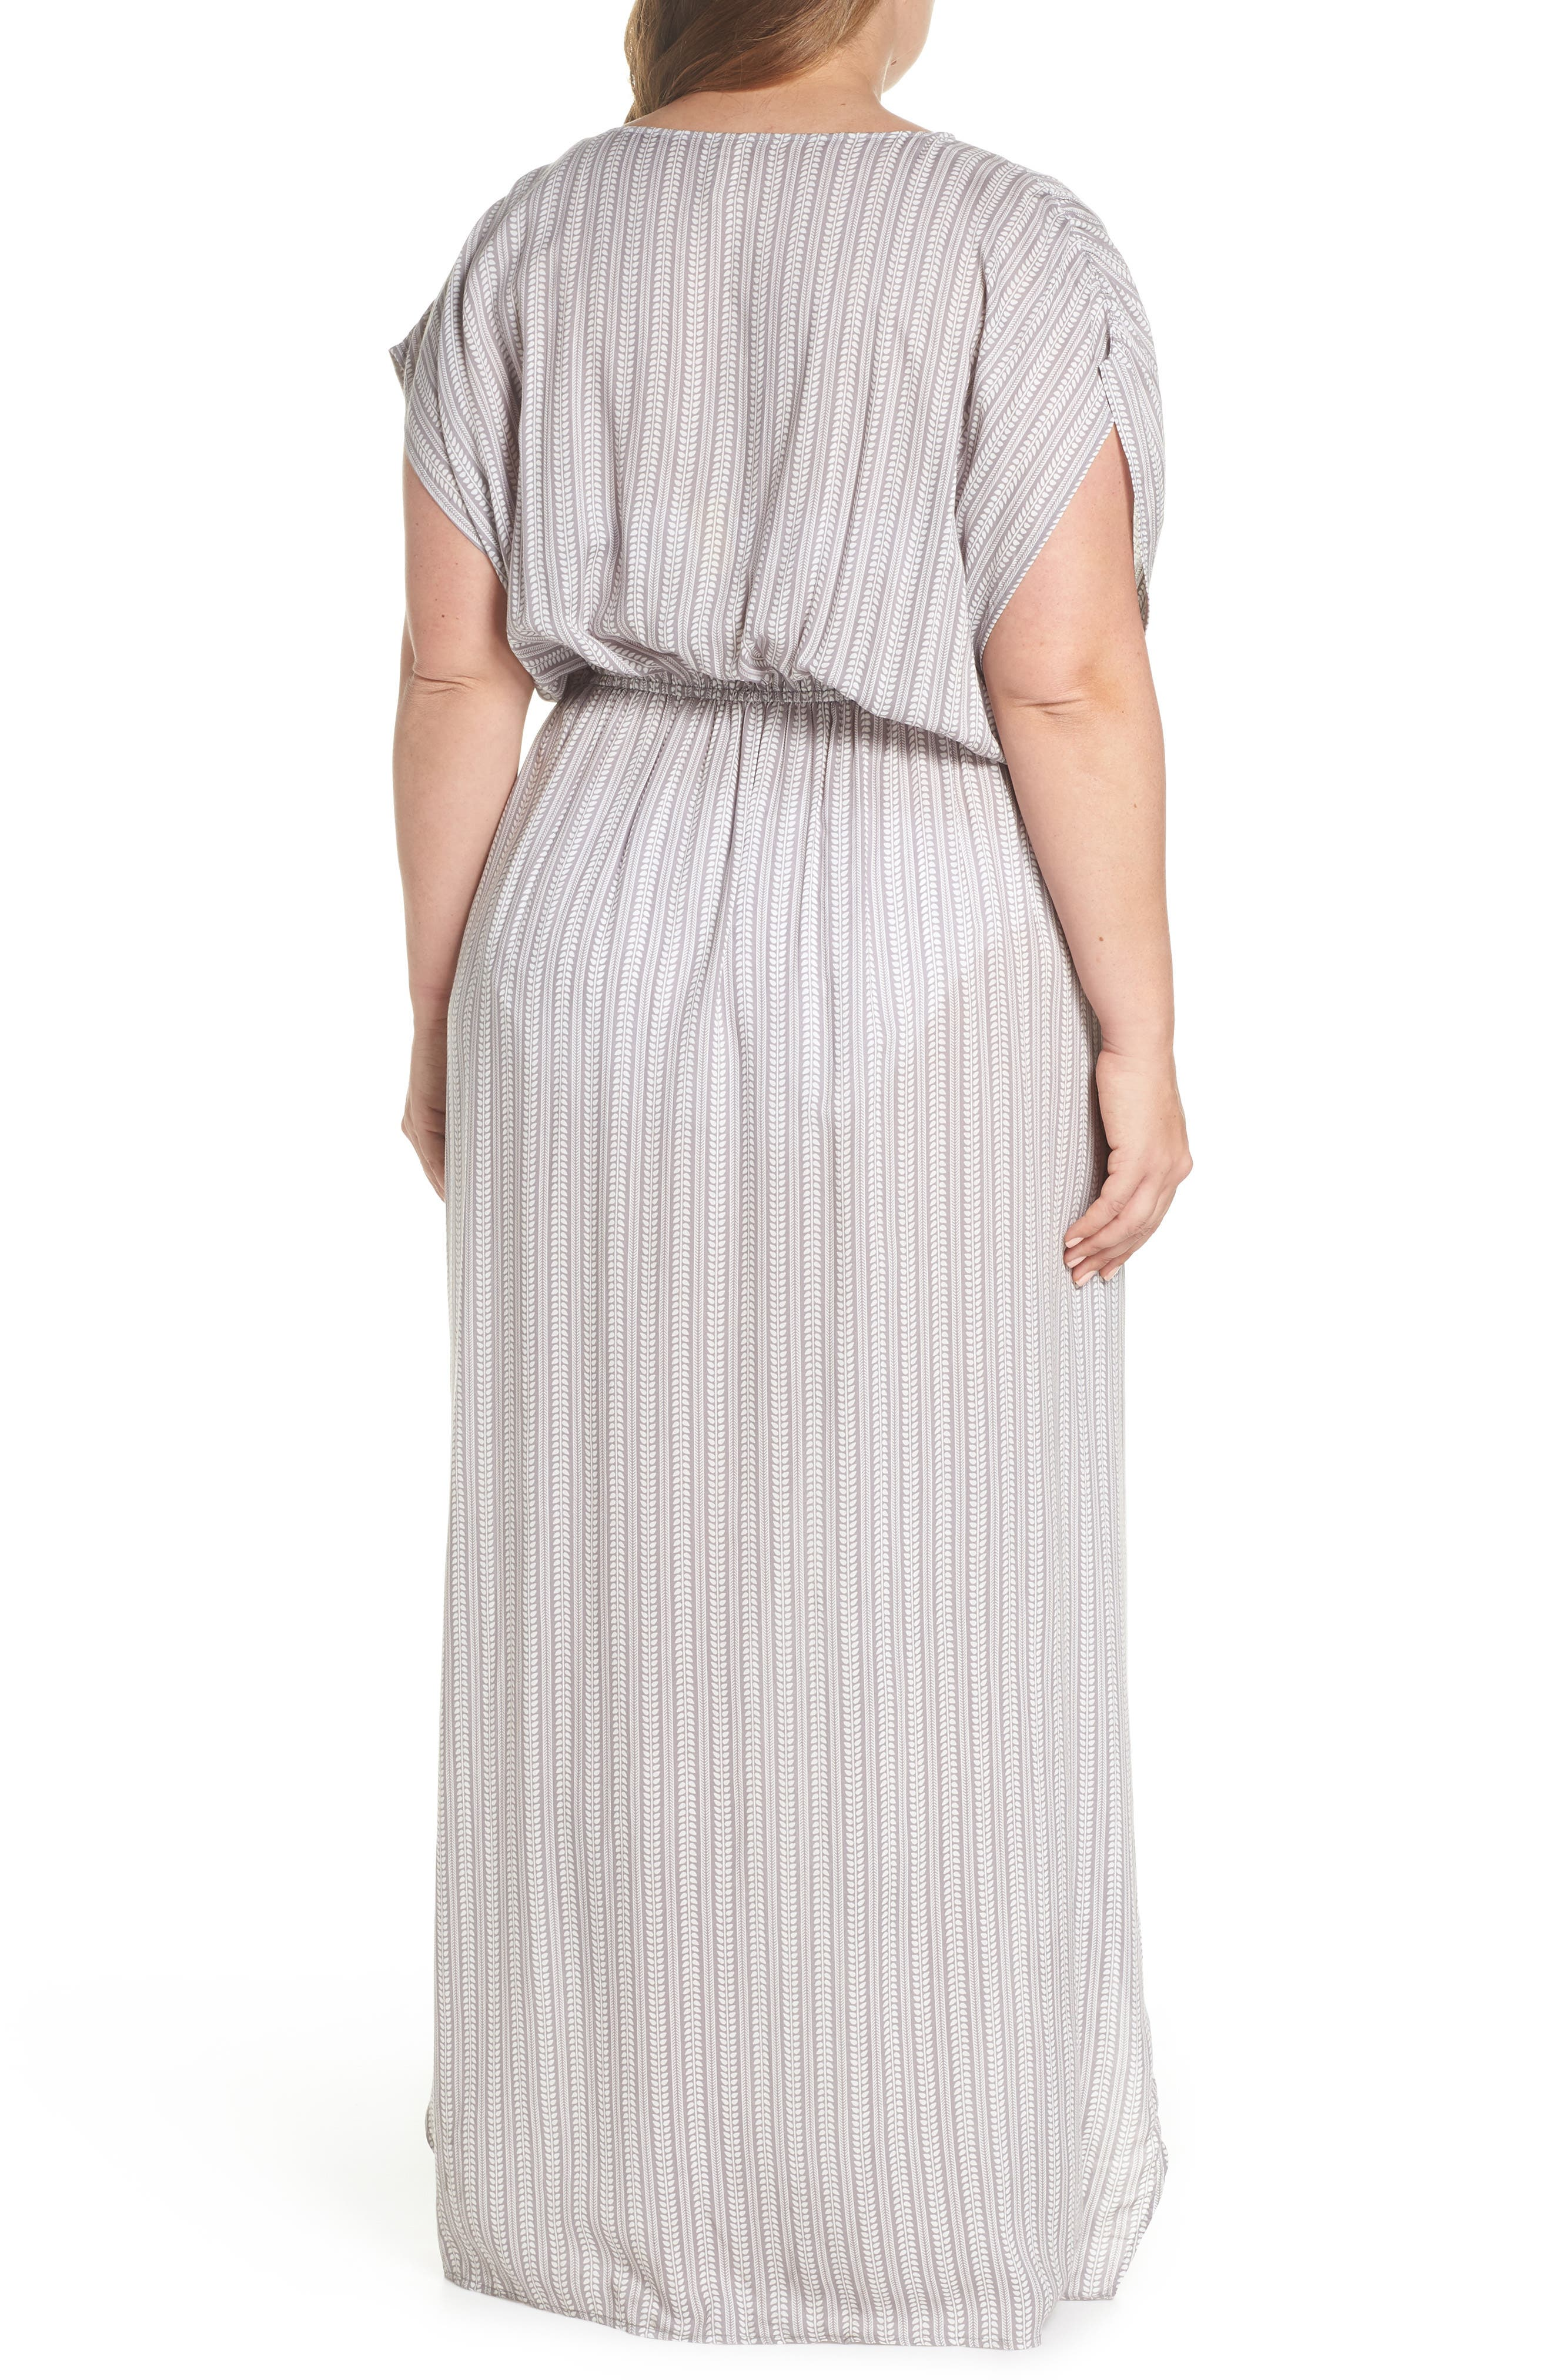 Wrap Maxi Cover-Up Dress,                             Alternate thumbnail 2, color,                             033